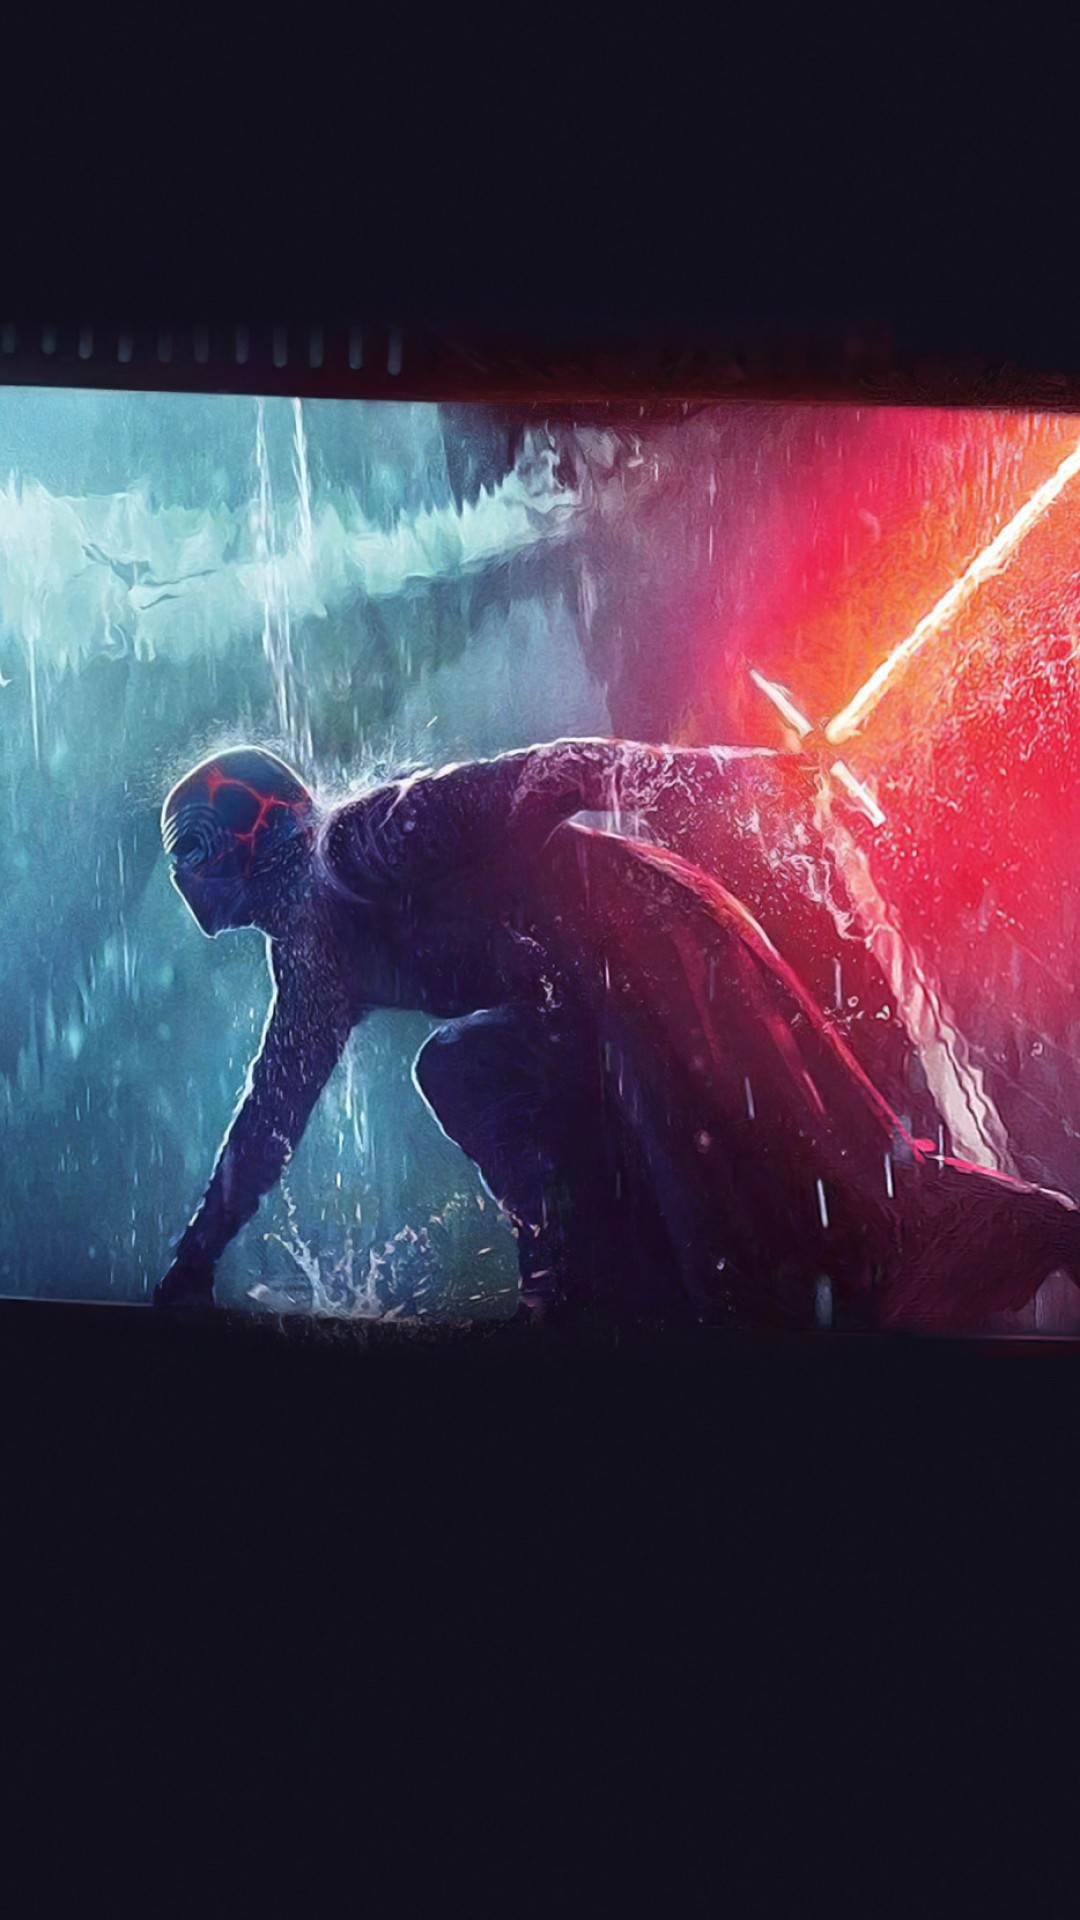 Star Wars The Rise Of Skywalker wallpaper for android